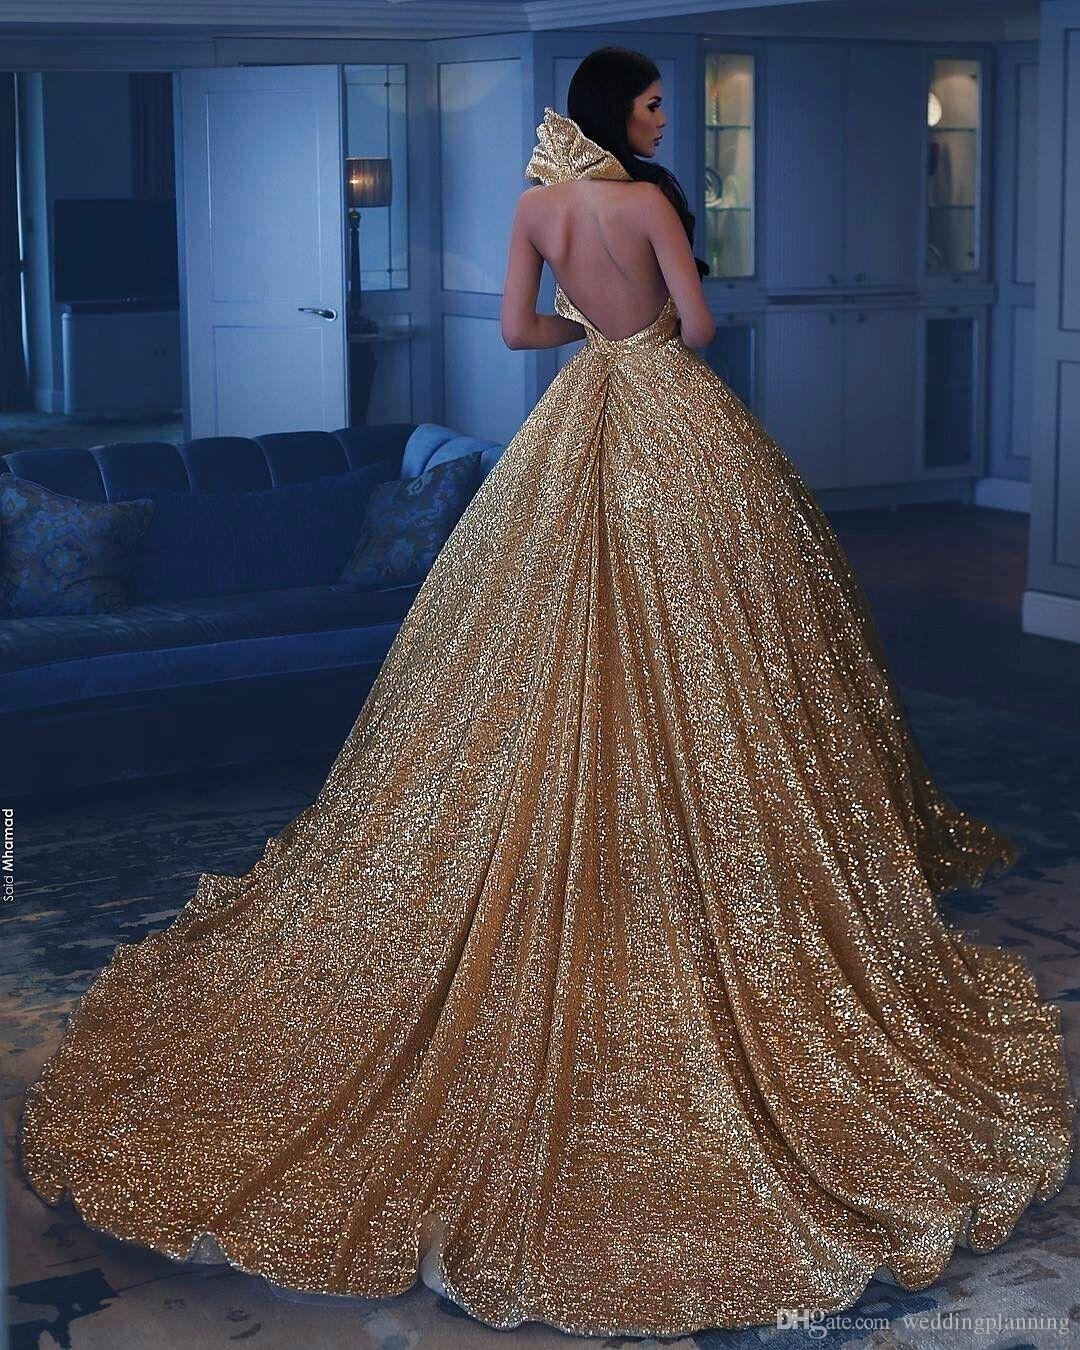 New Arabic Backless Mermaid Evening Dresses Berta Prom Dresses Chinese Style Sequins Sweetheart Cheap Evening Gowns For Fat